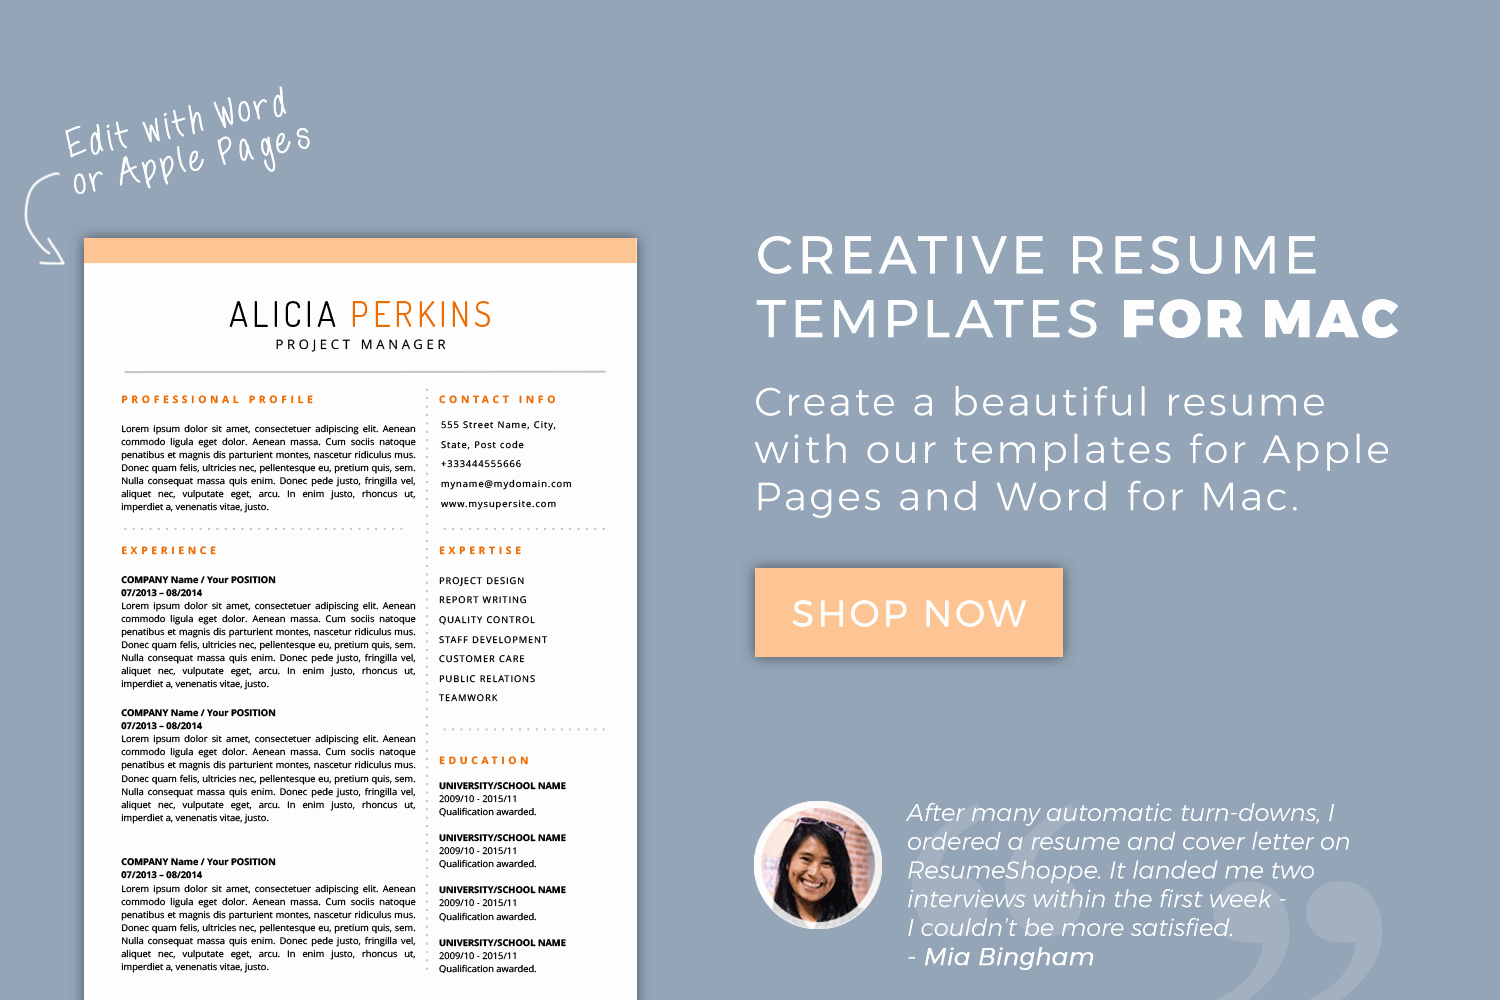 Free Resume Templates for Mac Elegant Resume Templates for Mac Word & Apple Pages Instant